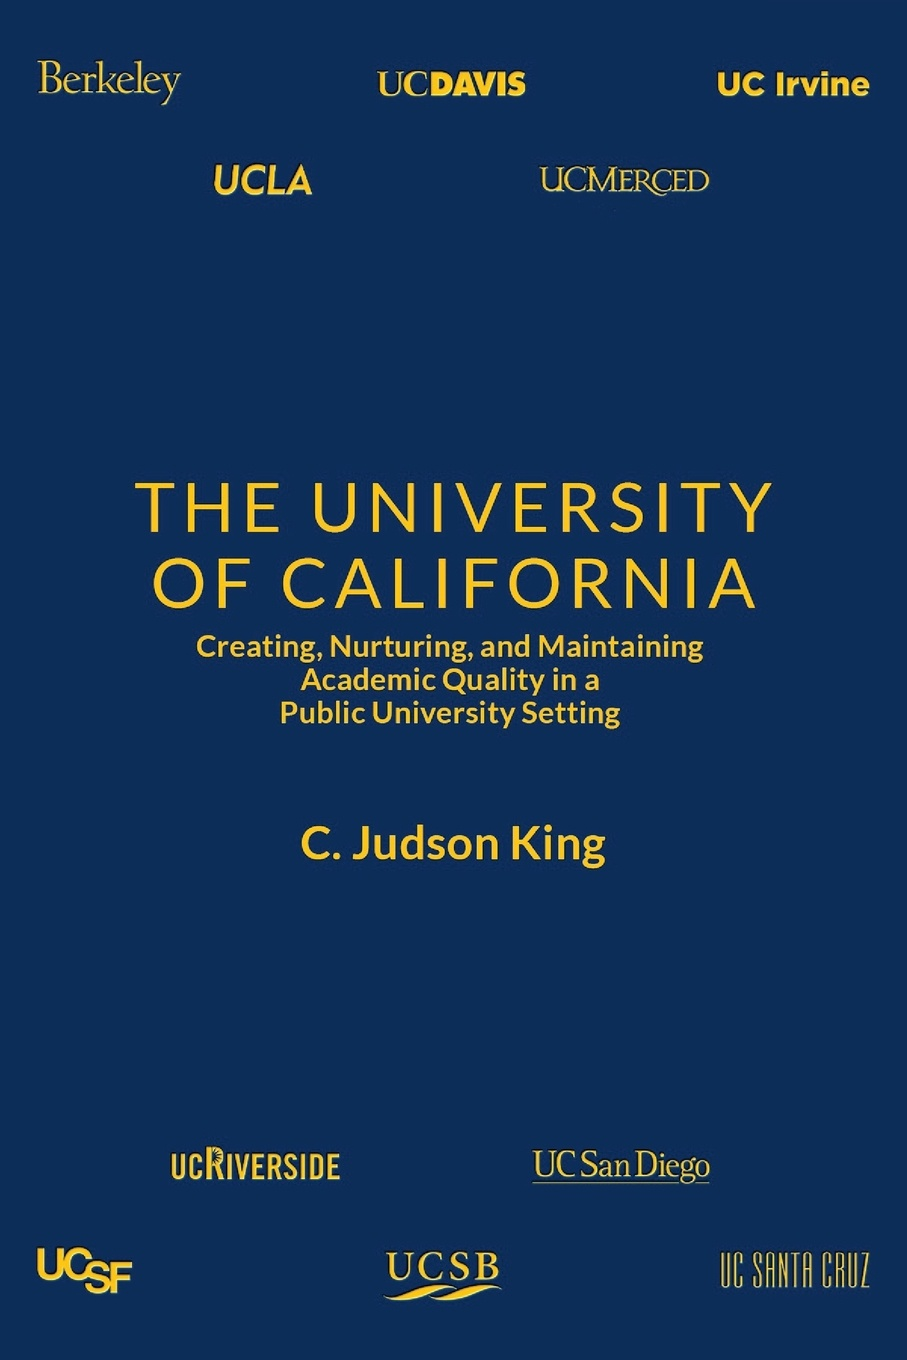 C. Judson King The University of California. Creating, Nurturing, and Maintaining Academic Quality in a Public-University Setting j w 1923 peltason political scientist and leader in higher education 1947 1995 oral history transcript sixteenth president of the university of california chancellor at uc irvine and the university of illinois